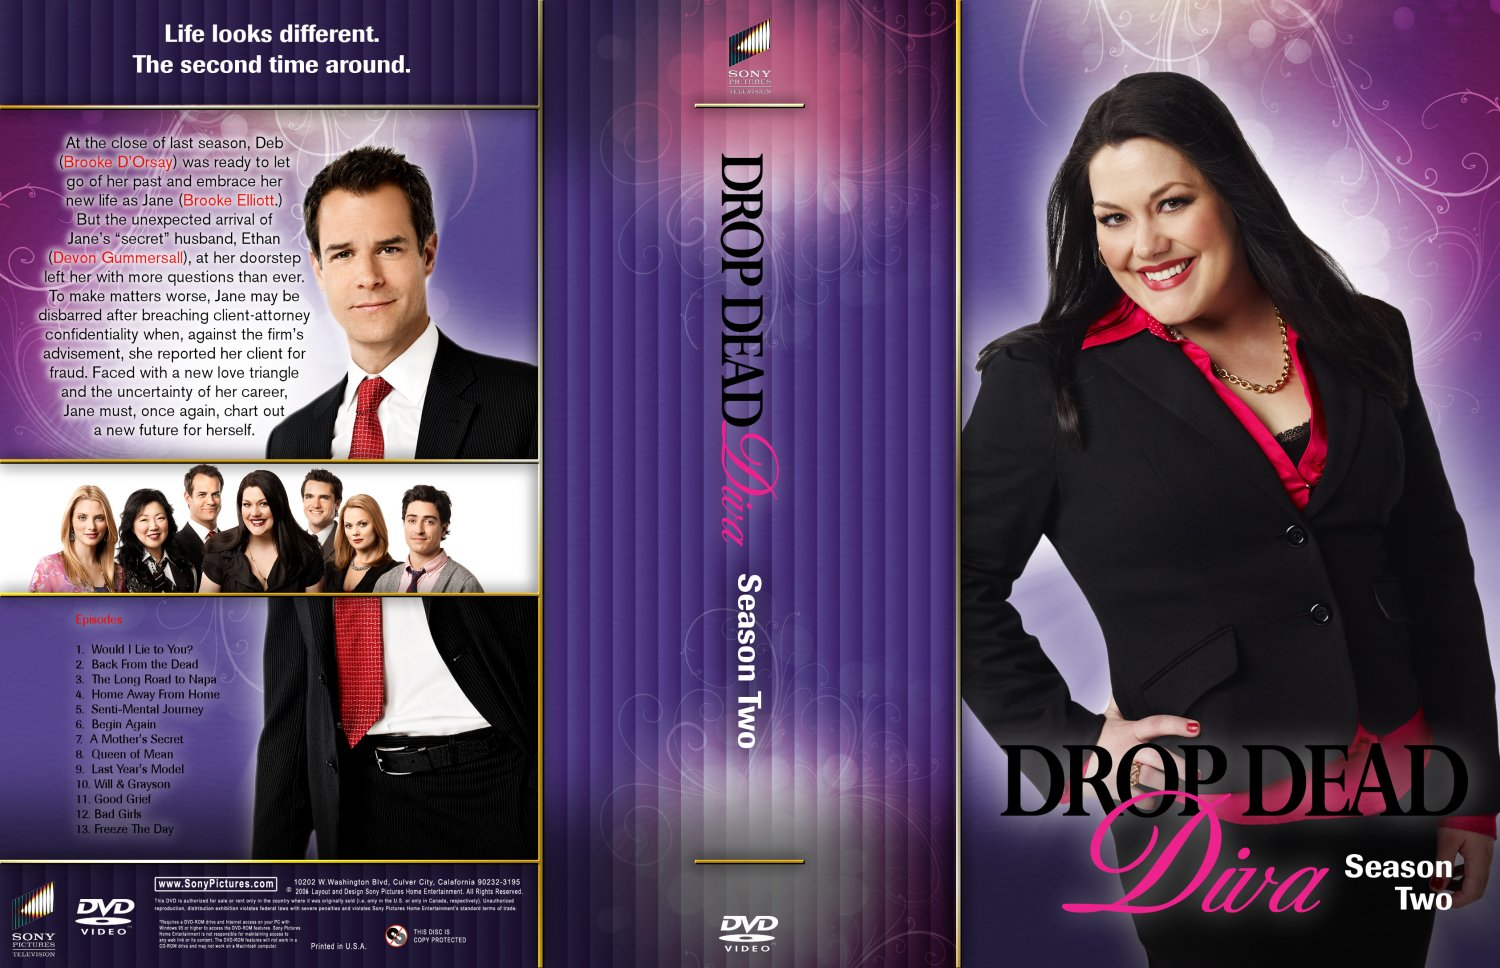 Drop dead diva season 2 tv dvd custom covers drop dead diva season 2 customlarge dvd covers - Drop dead diva dvd ...